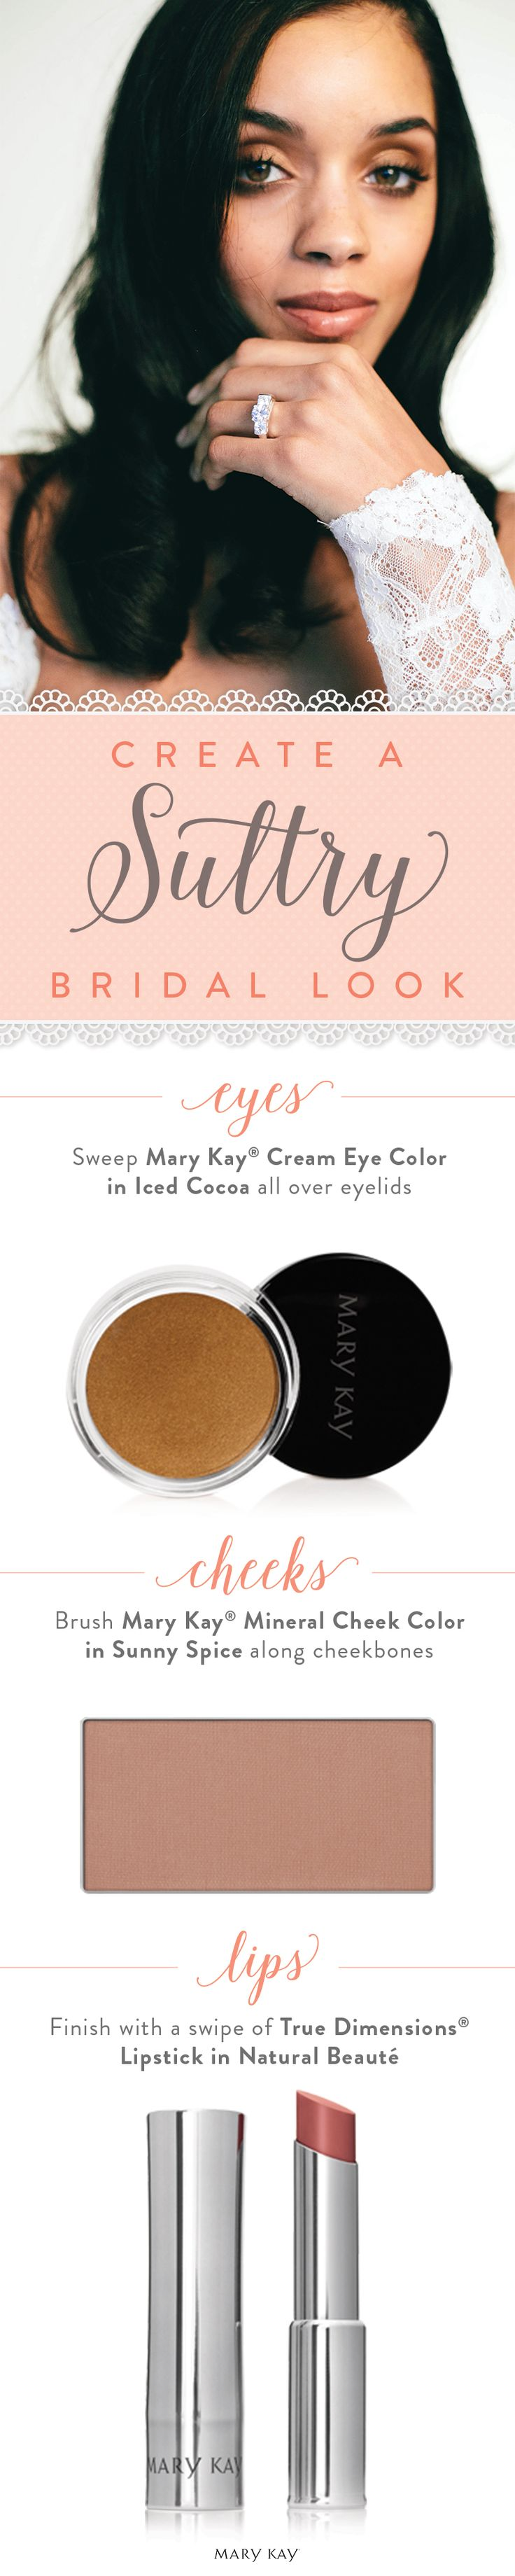 Makeup artist Moani Lee puts a spin on the classic smoky eye to create a sultry bridal look with a swipe of Mary Kay® Cream Eye Color in Iced Cocoa. Ask me about this bridal look! www.marykay.com/meghanworthington